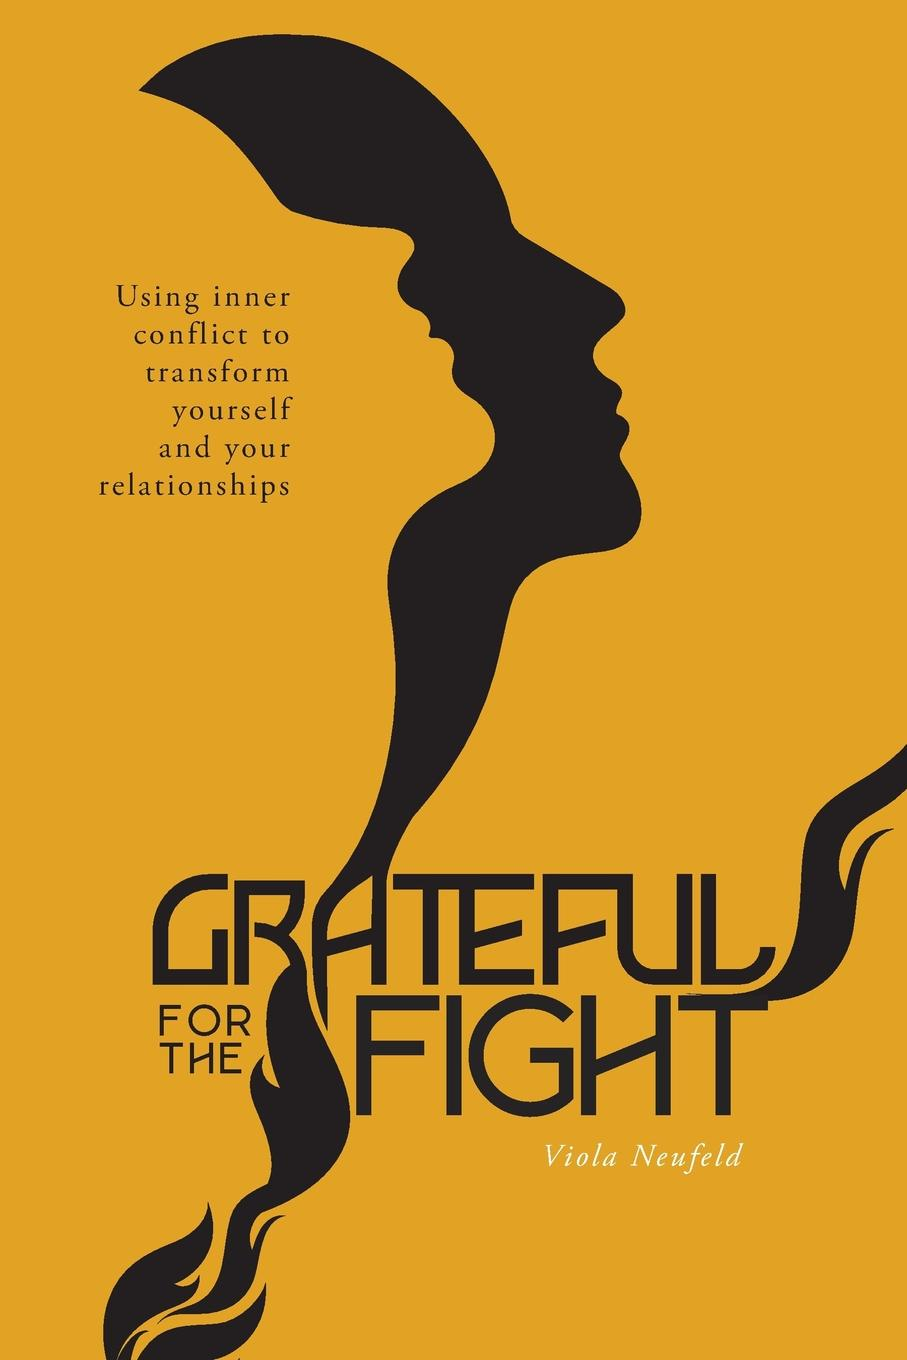 Viola Neufeld Grateful for the Fight. Using inner conflict to transform yourself and your relationships d e berlyne conflict arousal and curiosity